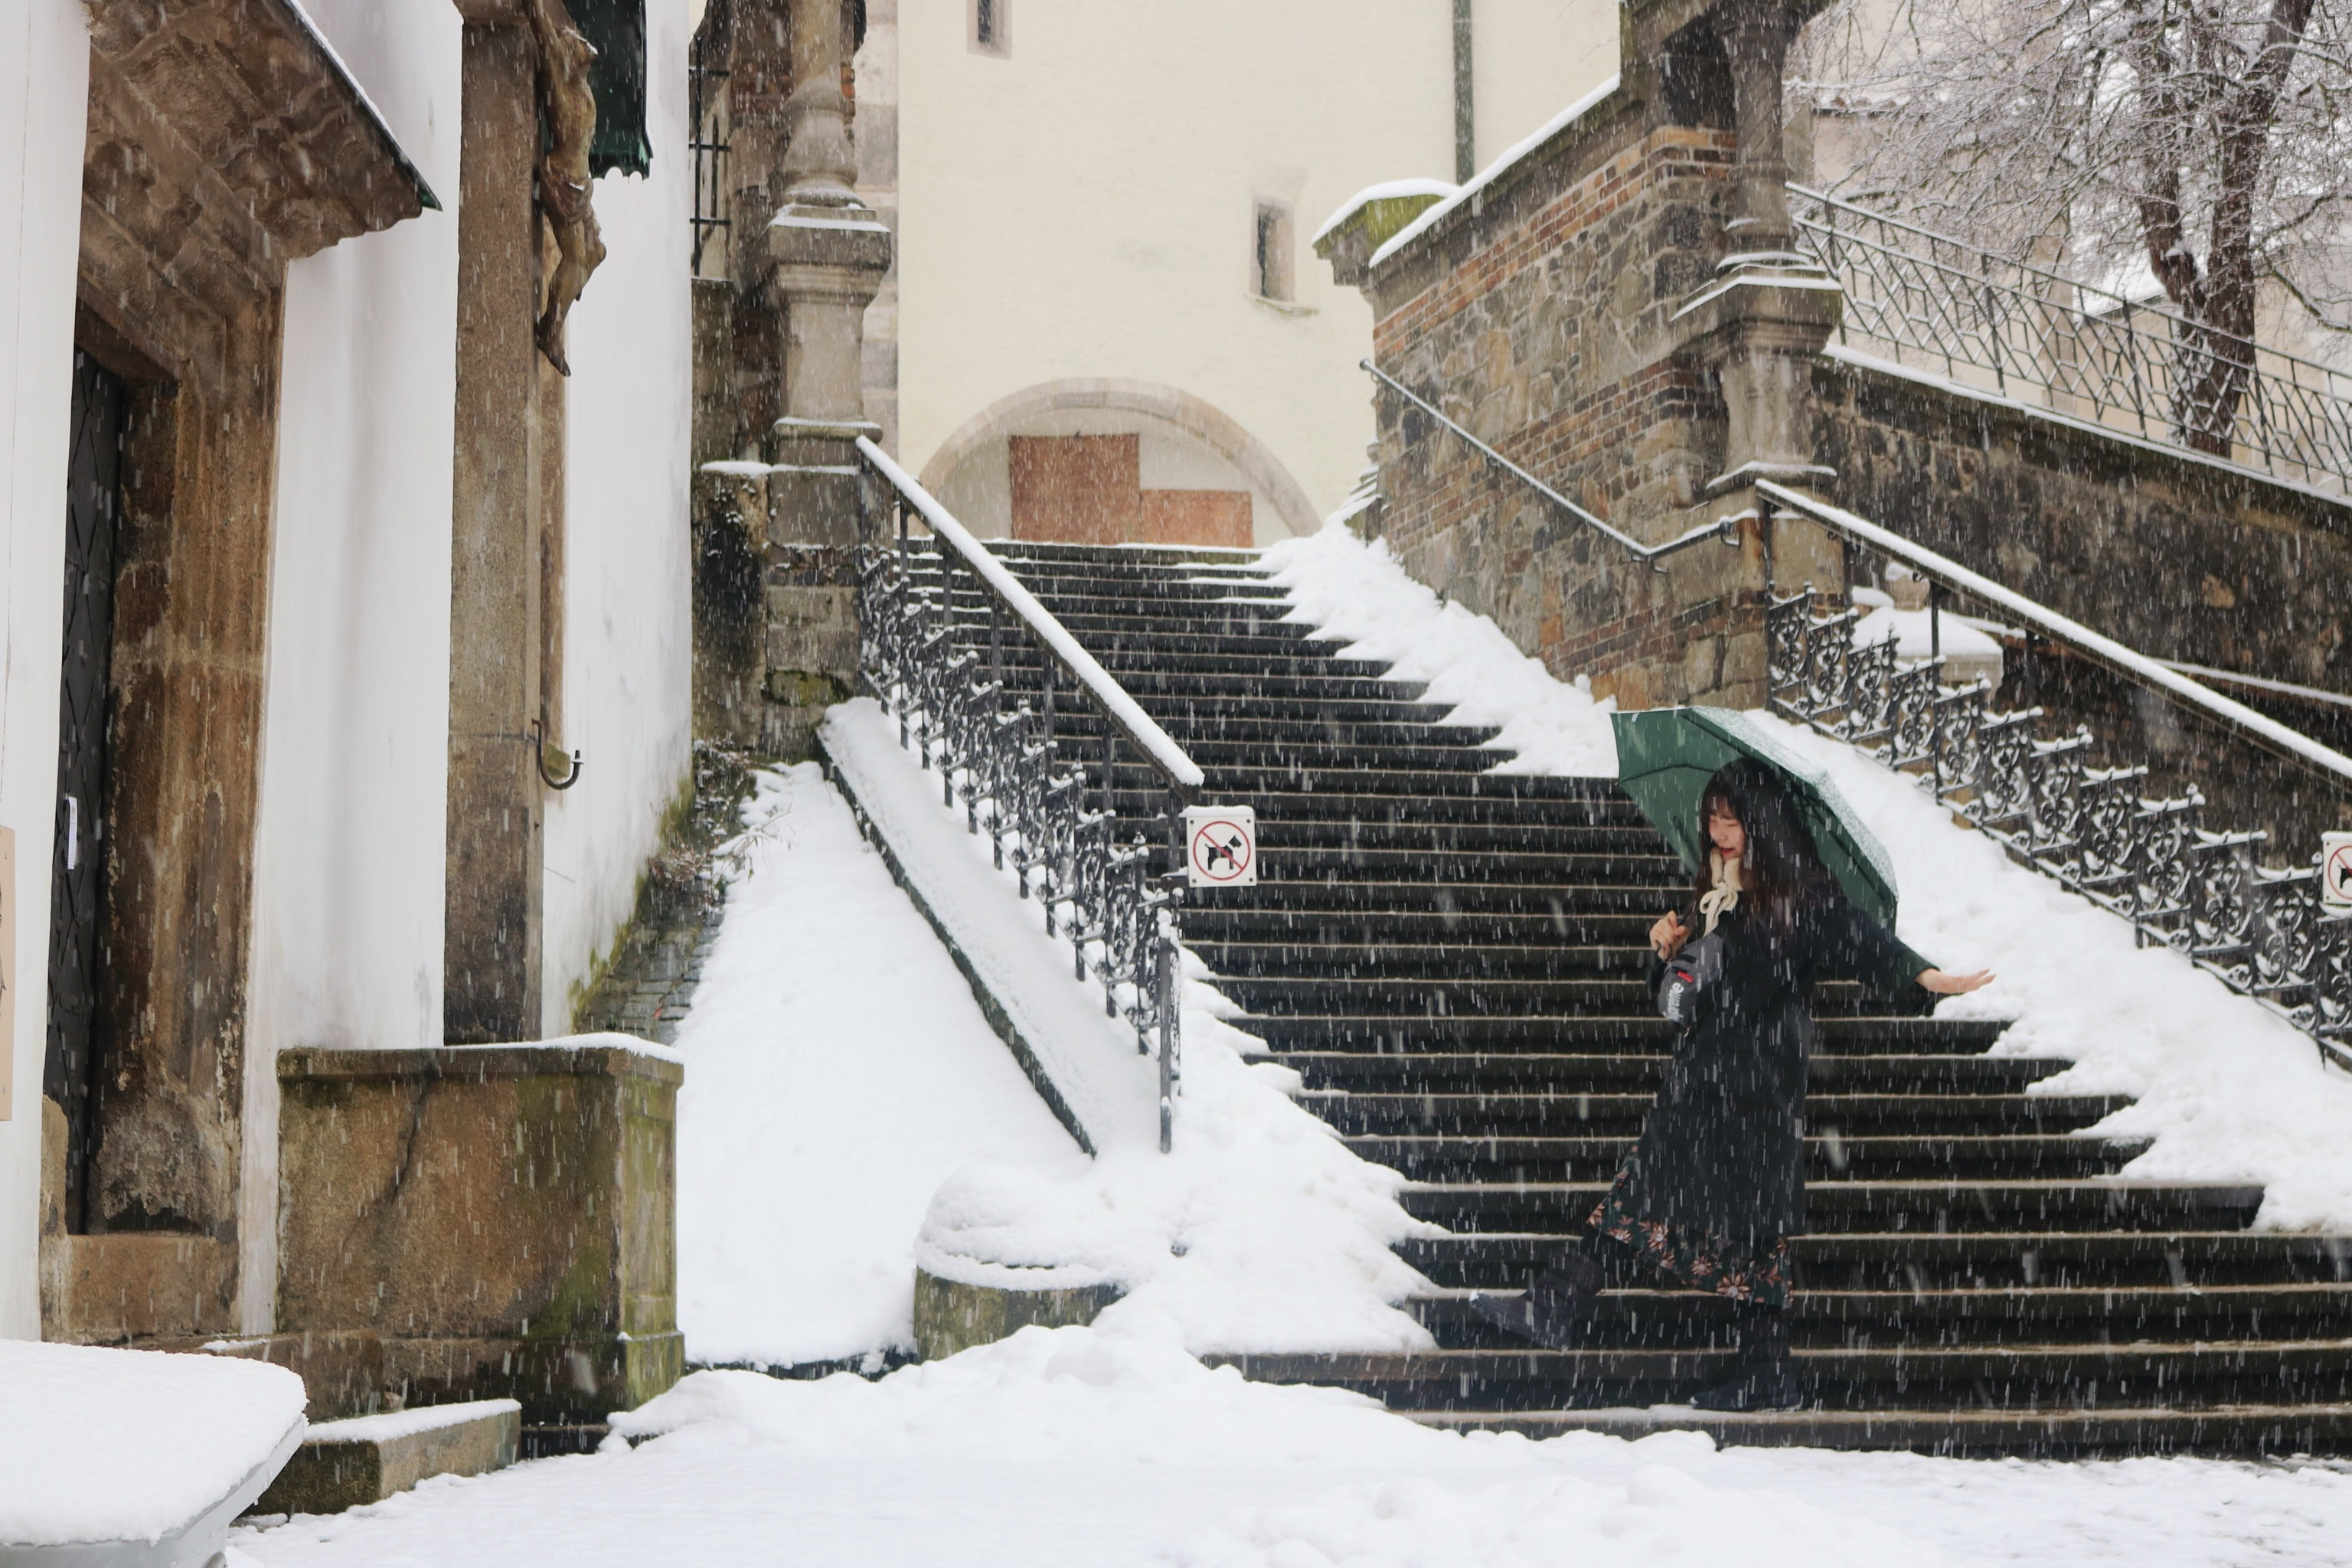 woman holding umbrella walking on stair